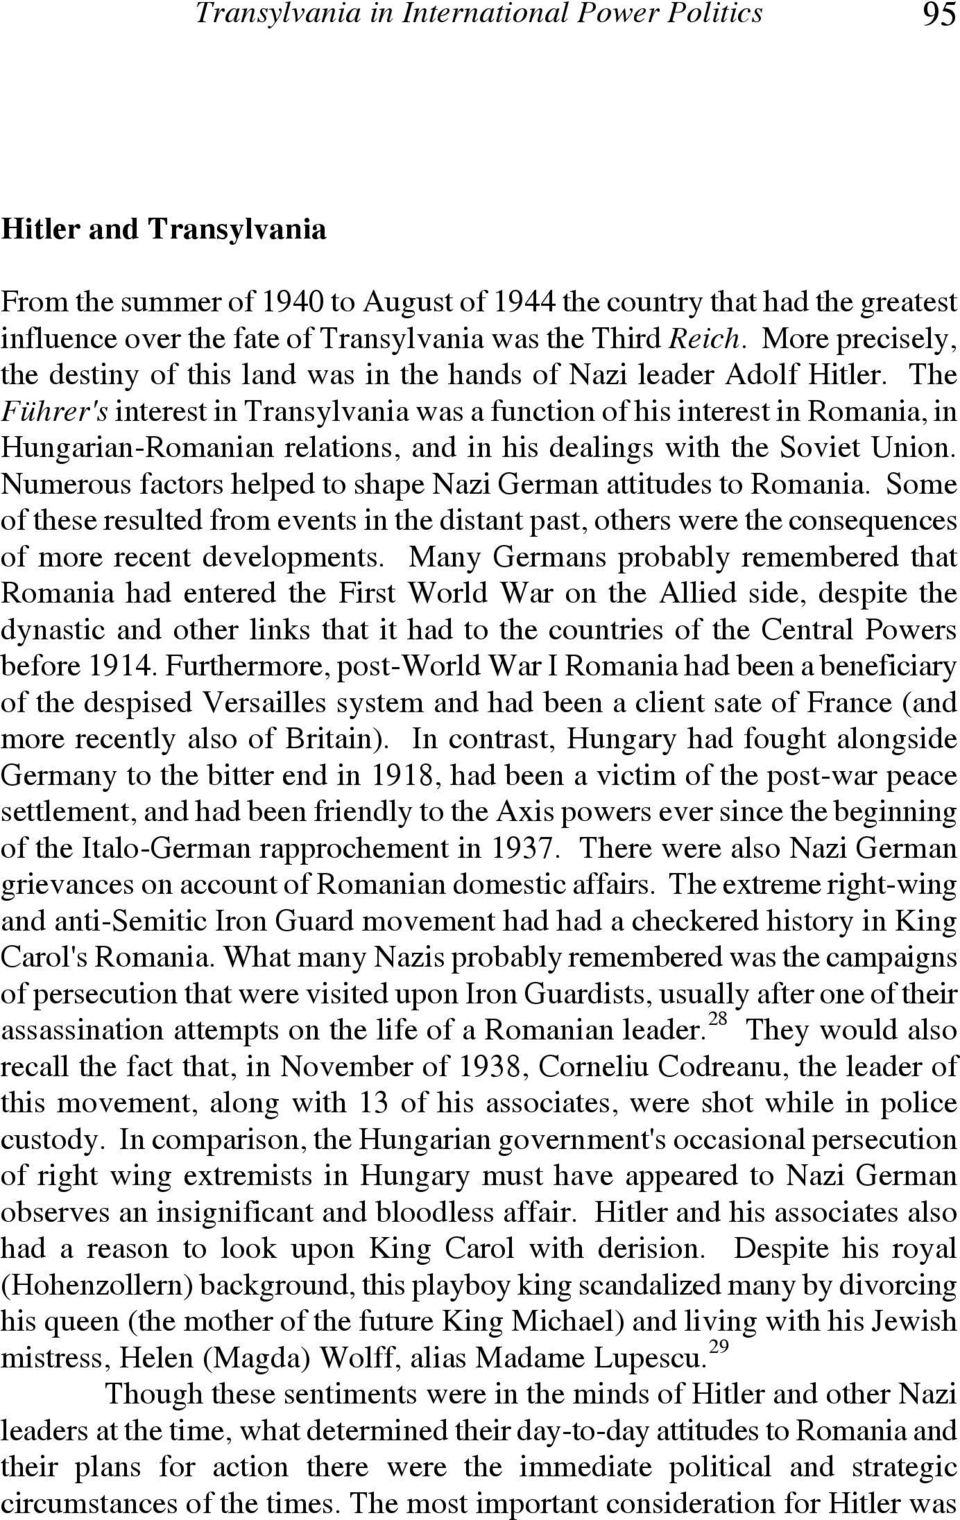 The Führer's interest in Transylvania was a function of his interest in Romania, in Hungarian-Romanian relations, and in his dealings with the Soviet Union.